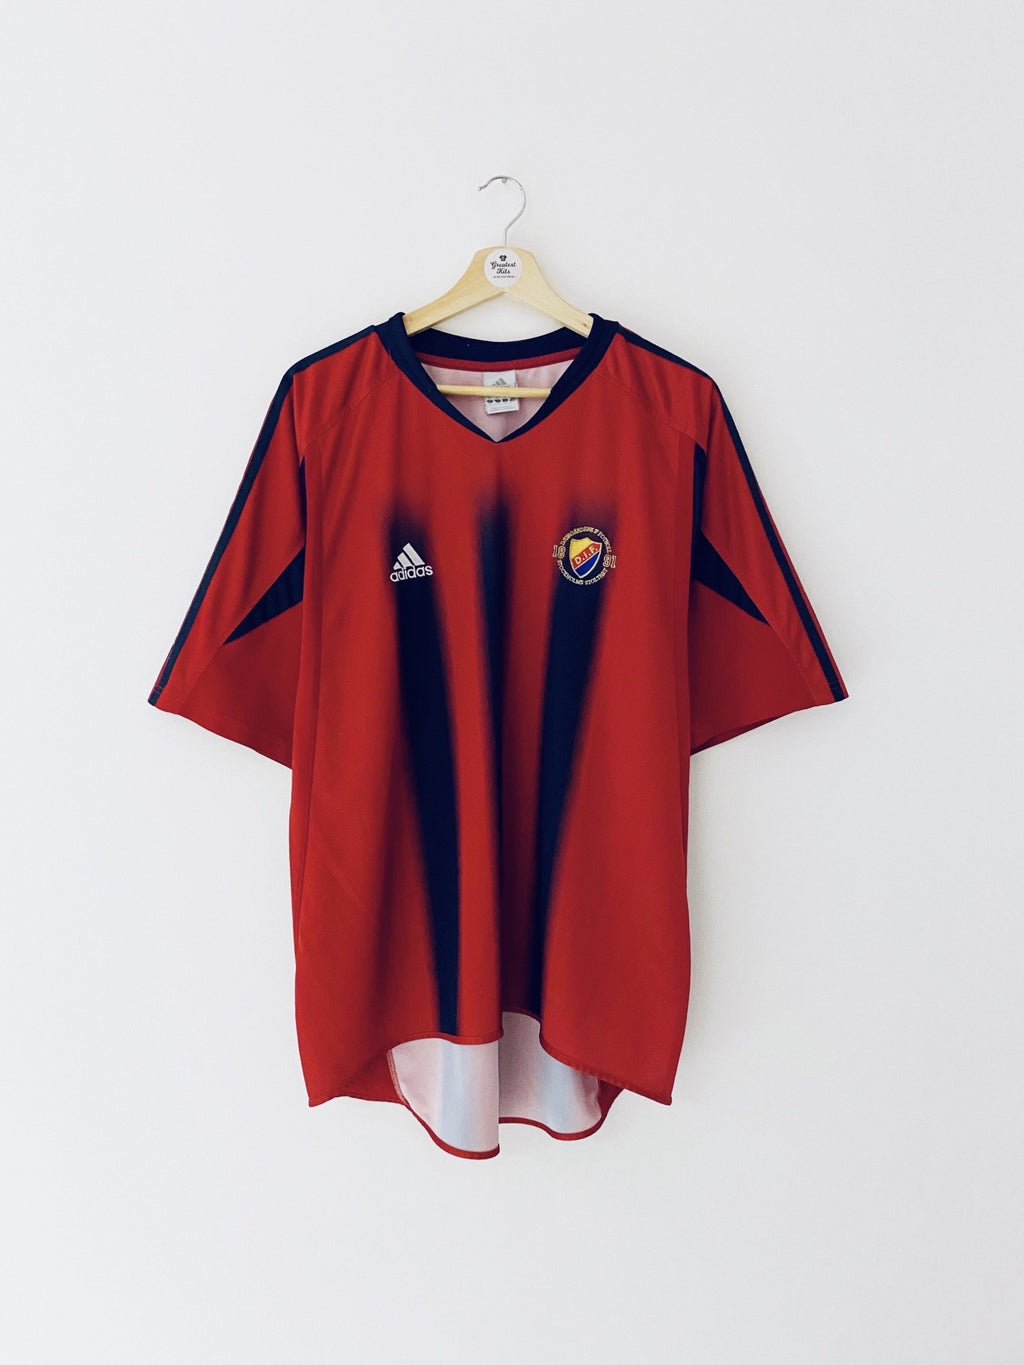 2004/05 Djurgardens Away Shirt (XL) 9/10